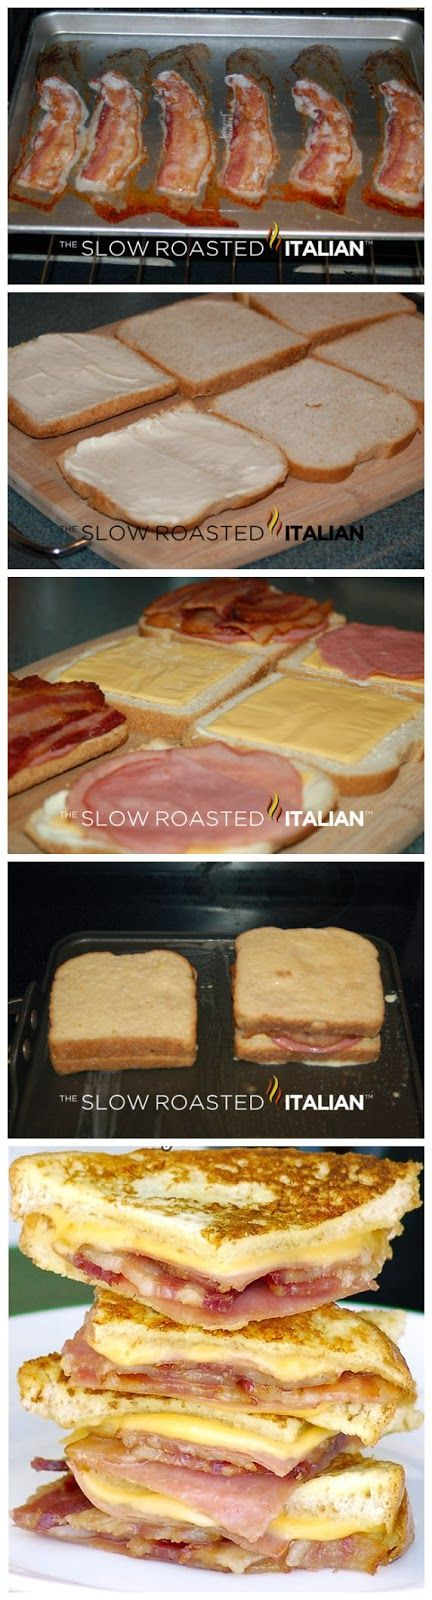 Bacon Monte Cristo Finger Sandwiches - Latest Food